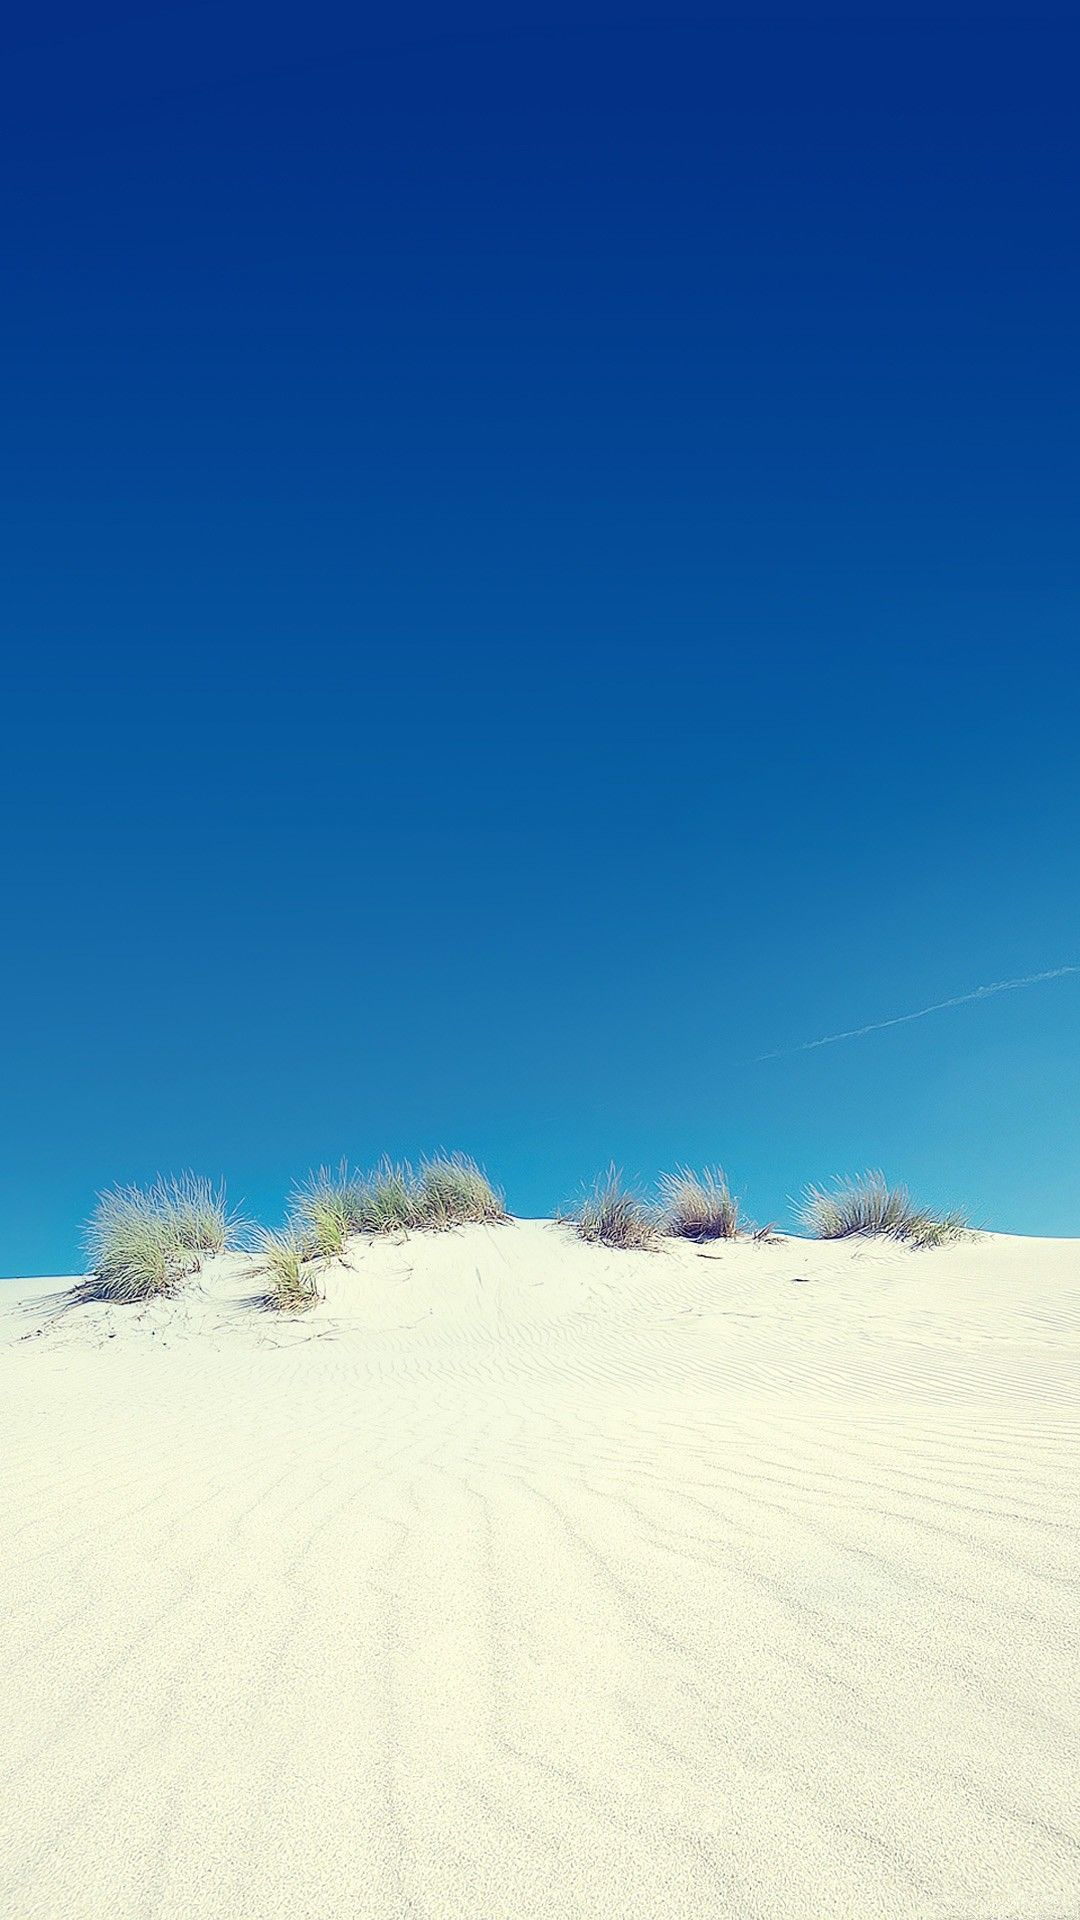 2018 年の nature iphone 6 plus wallpapers desert sand dune clear